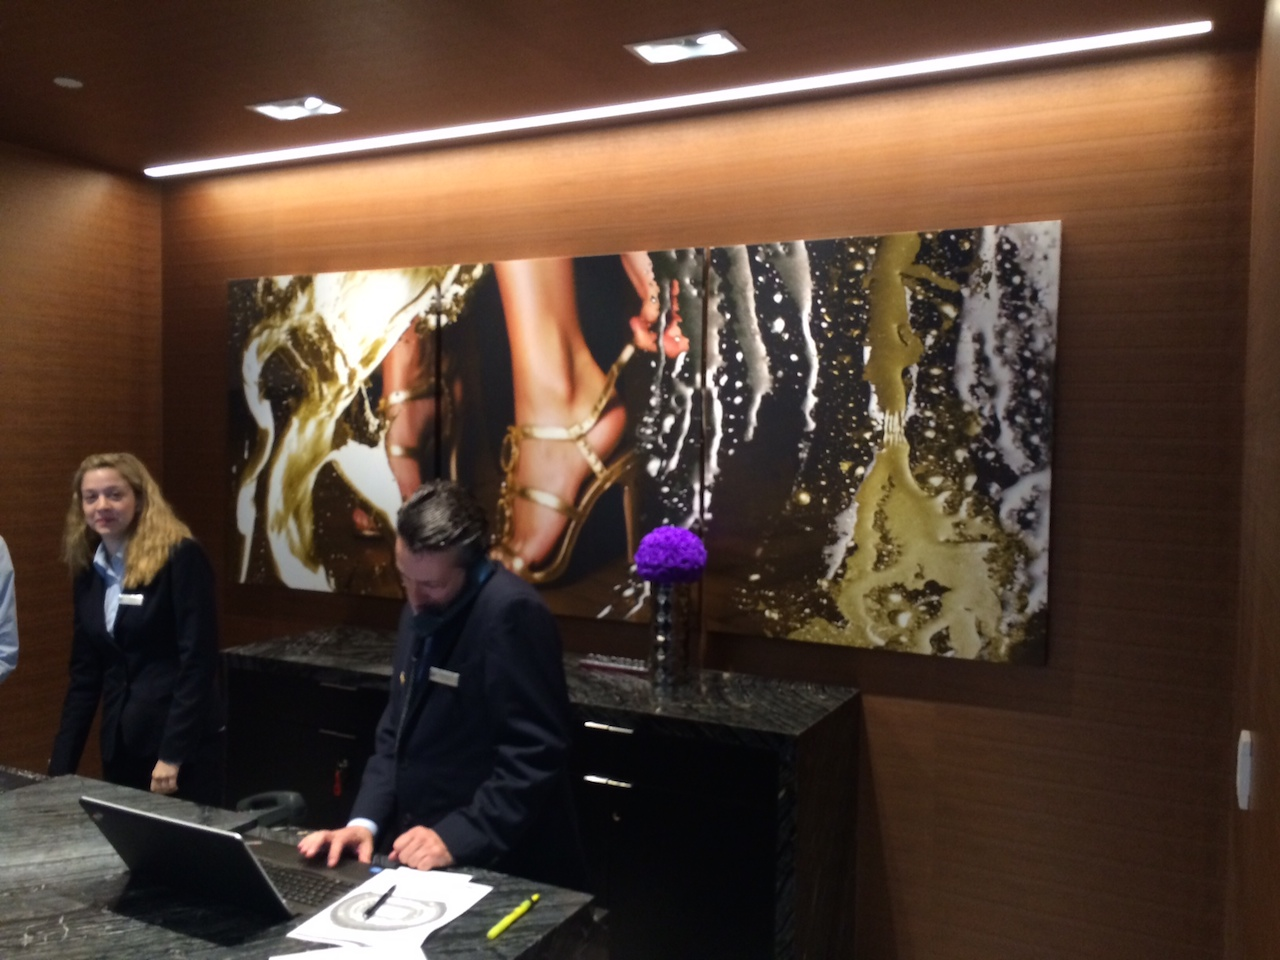 Art in the Loews Hollywood Hotel lobby (photo by Tim Hailand)